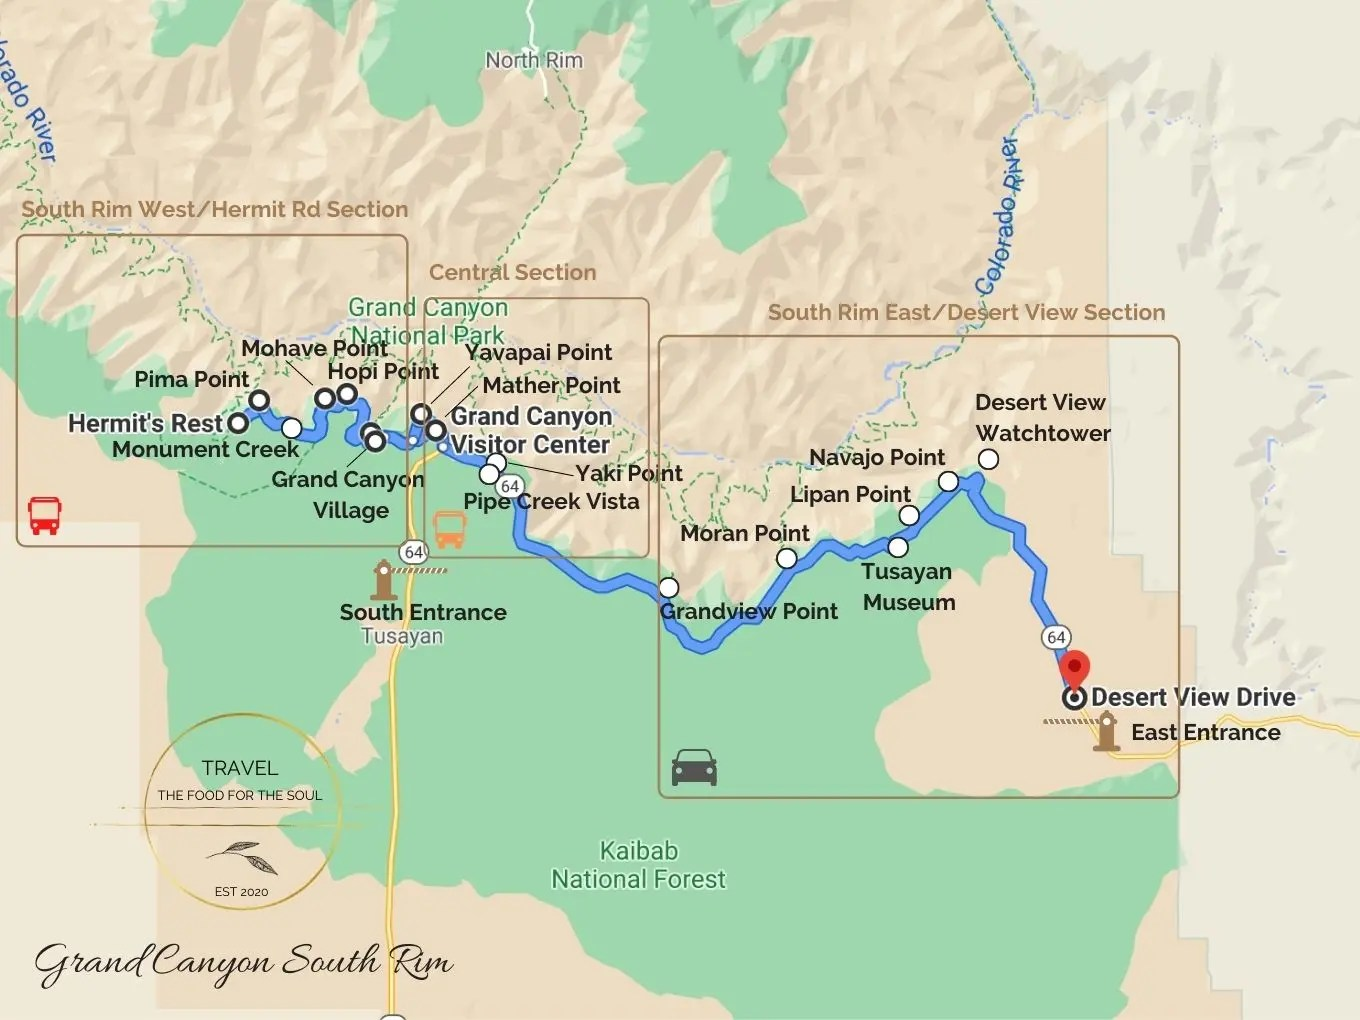 Grand Canyon South Rim Attractions Map